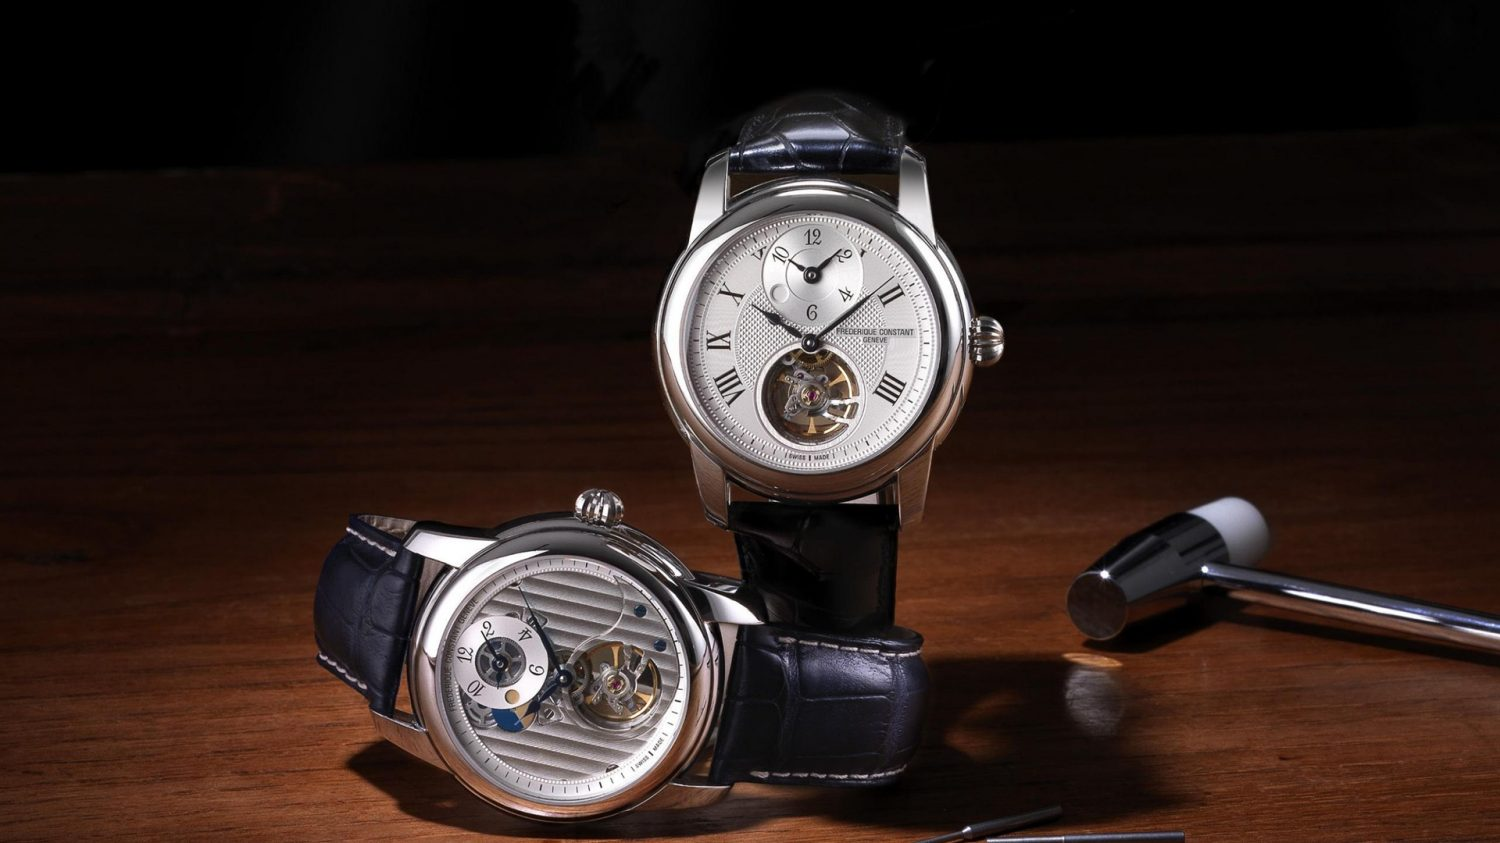 cropped-Frederique_Constant-Watch_Advertising_Wallpaper_1920x1080.jpg